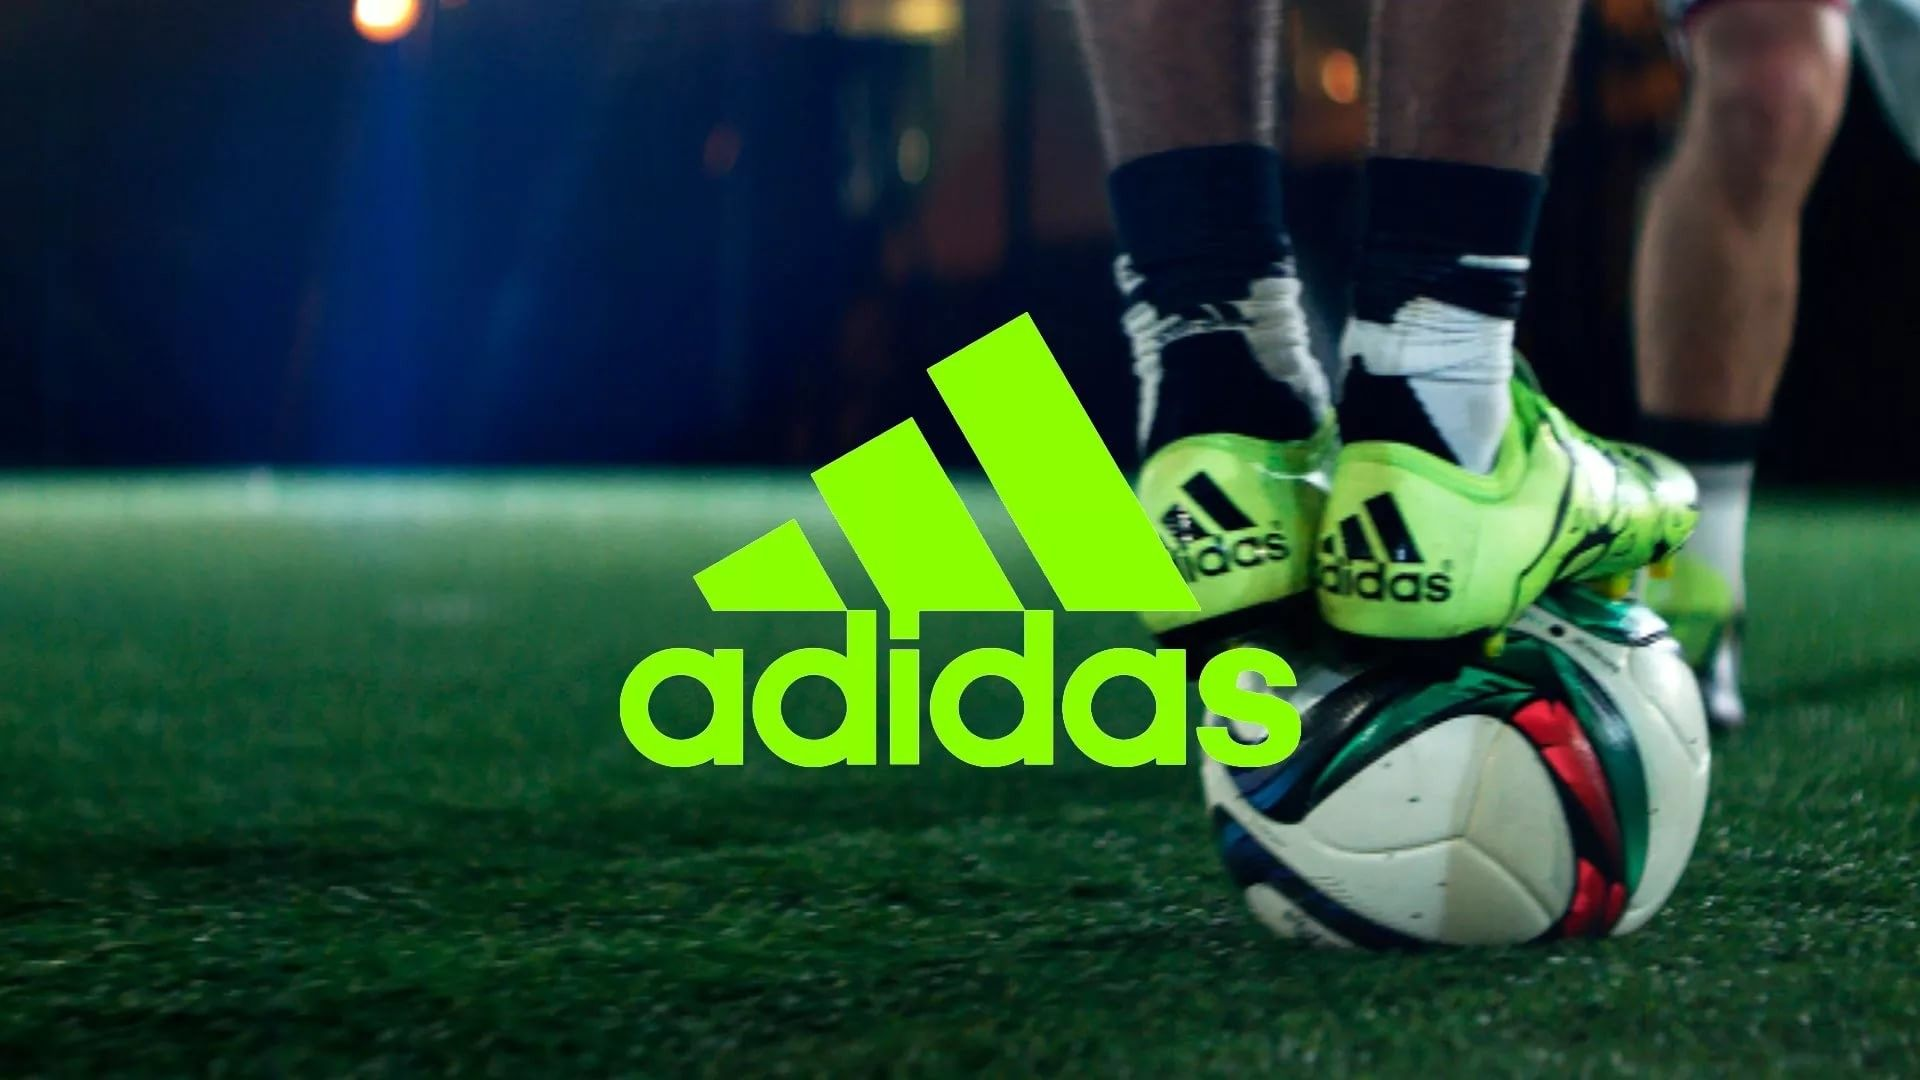 trigo simultáneo combustible  Adidas Soccer Wallpapers - Top Free Adidas Soccer Backgrounds -  WallpaperAccess